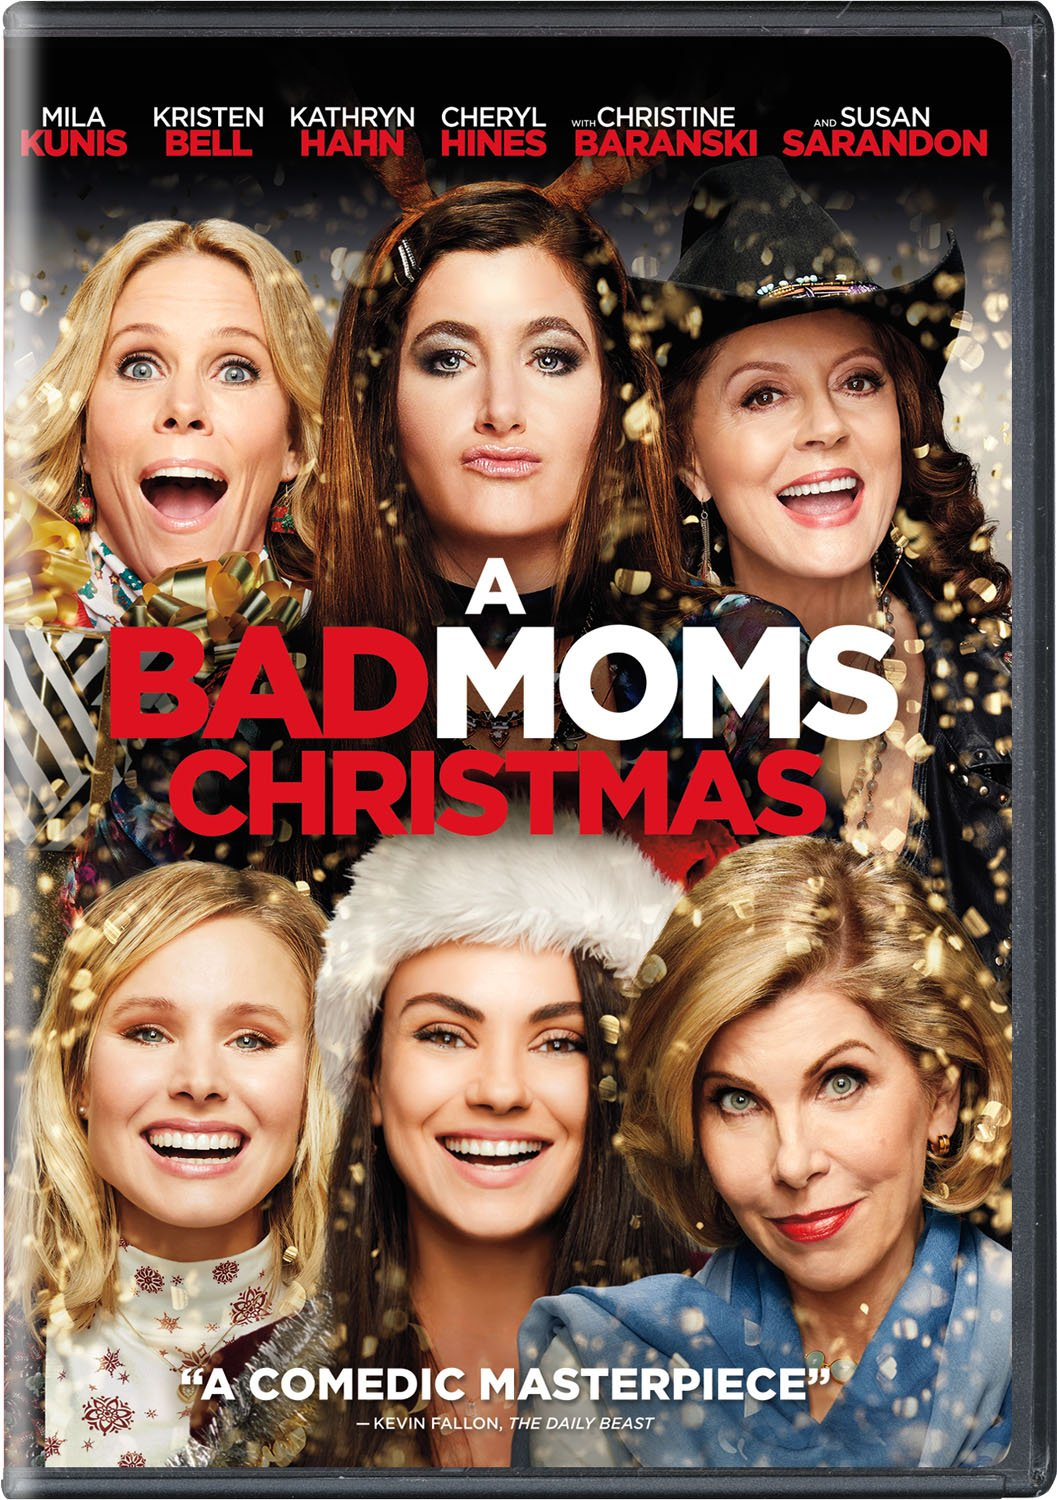 Amazon.com: A Bad Moms Christmas: Mila Kunis, Kristen Bell, Kathryn ...